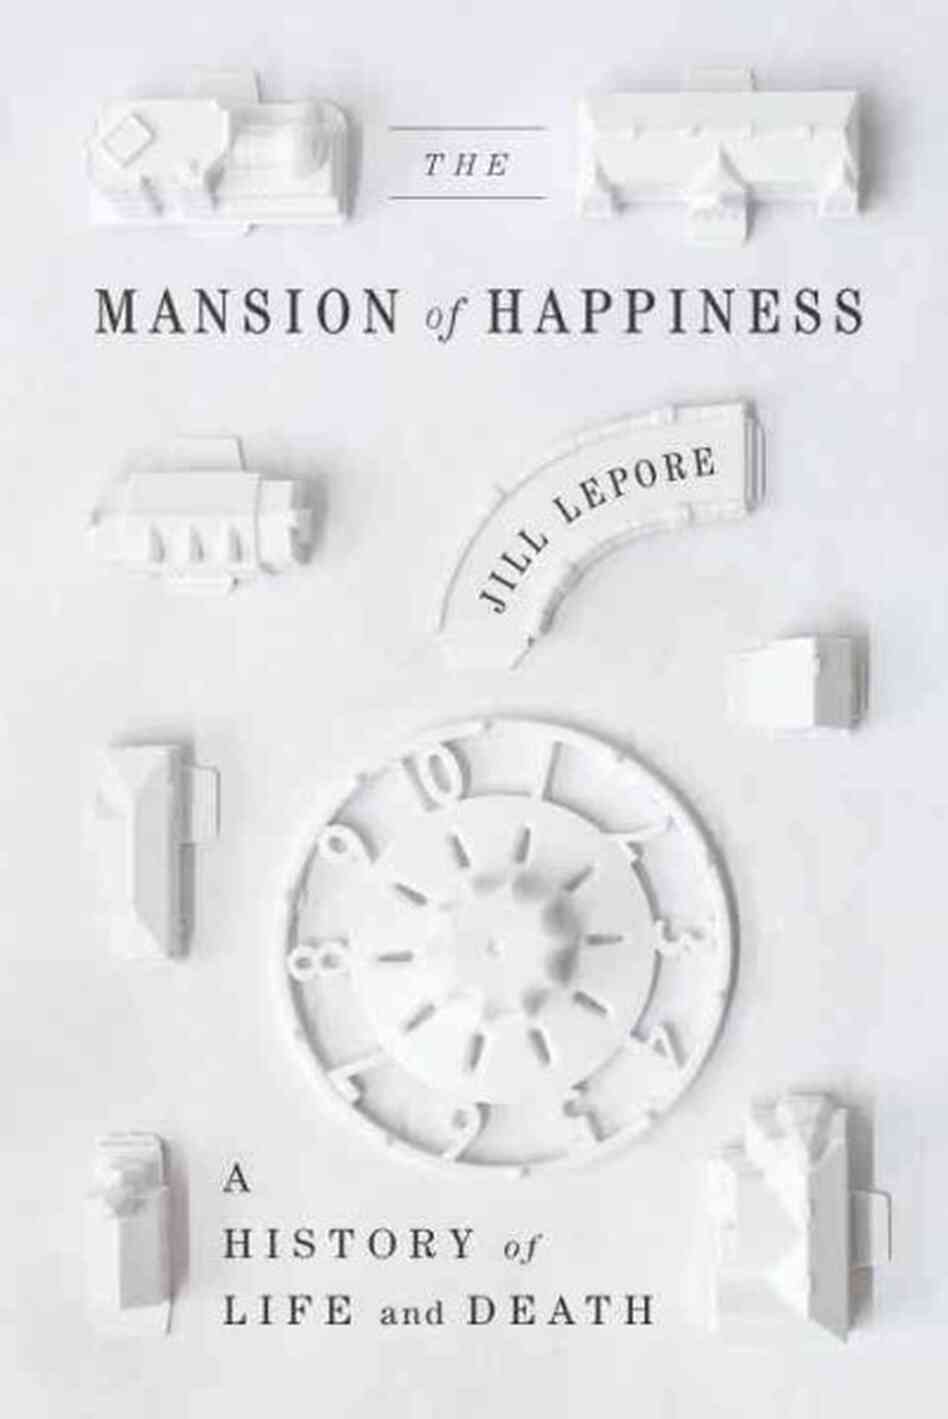 The Mansion of Happiness